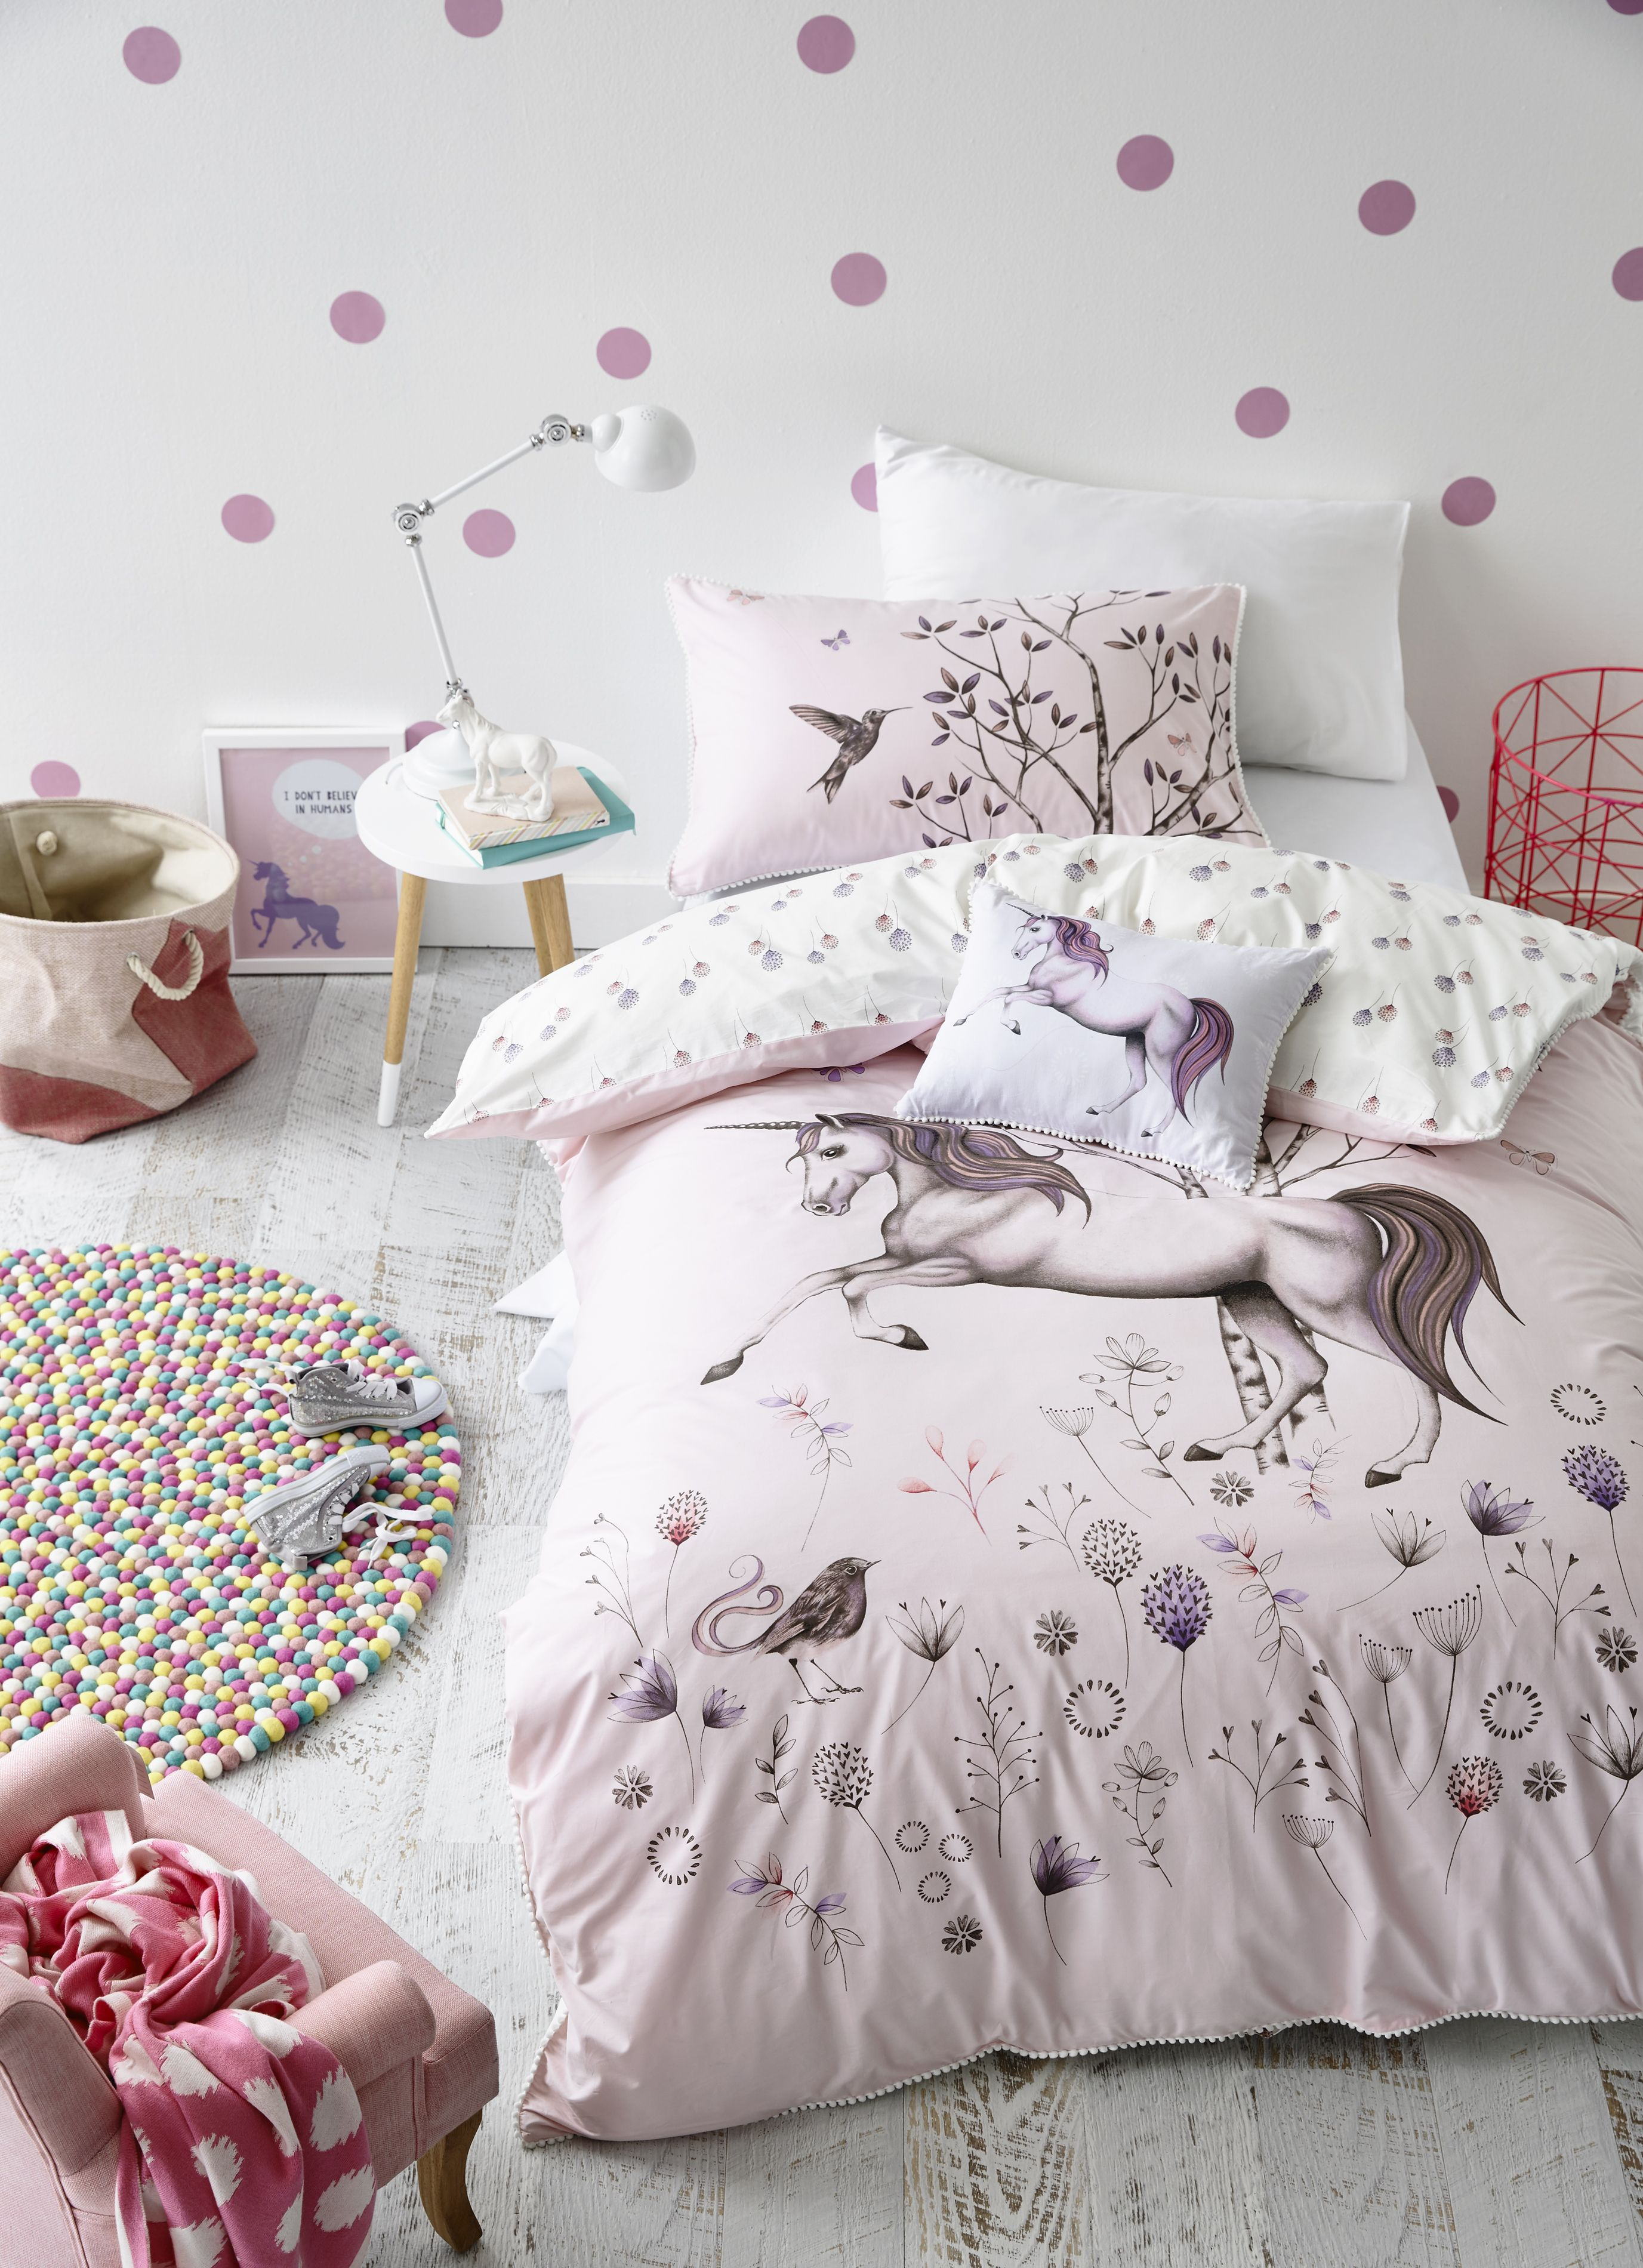 Horse shaped pillows for children - Adairs Kids Unicorn Dreaming Quilt Cover Set Omg Flik Chanel Are Obsessed With Horsey Stuff Cos Auntie Angie Nanny With The Horses Have Horses